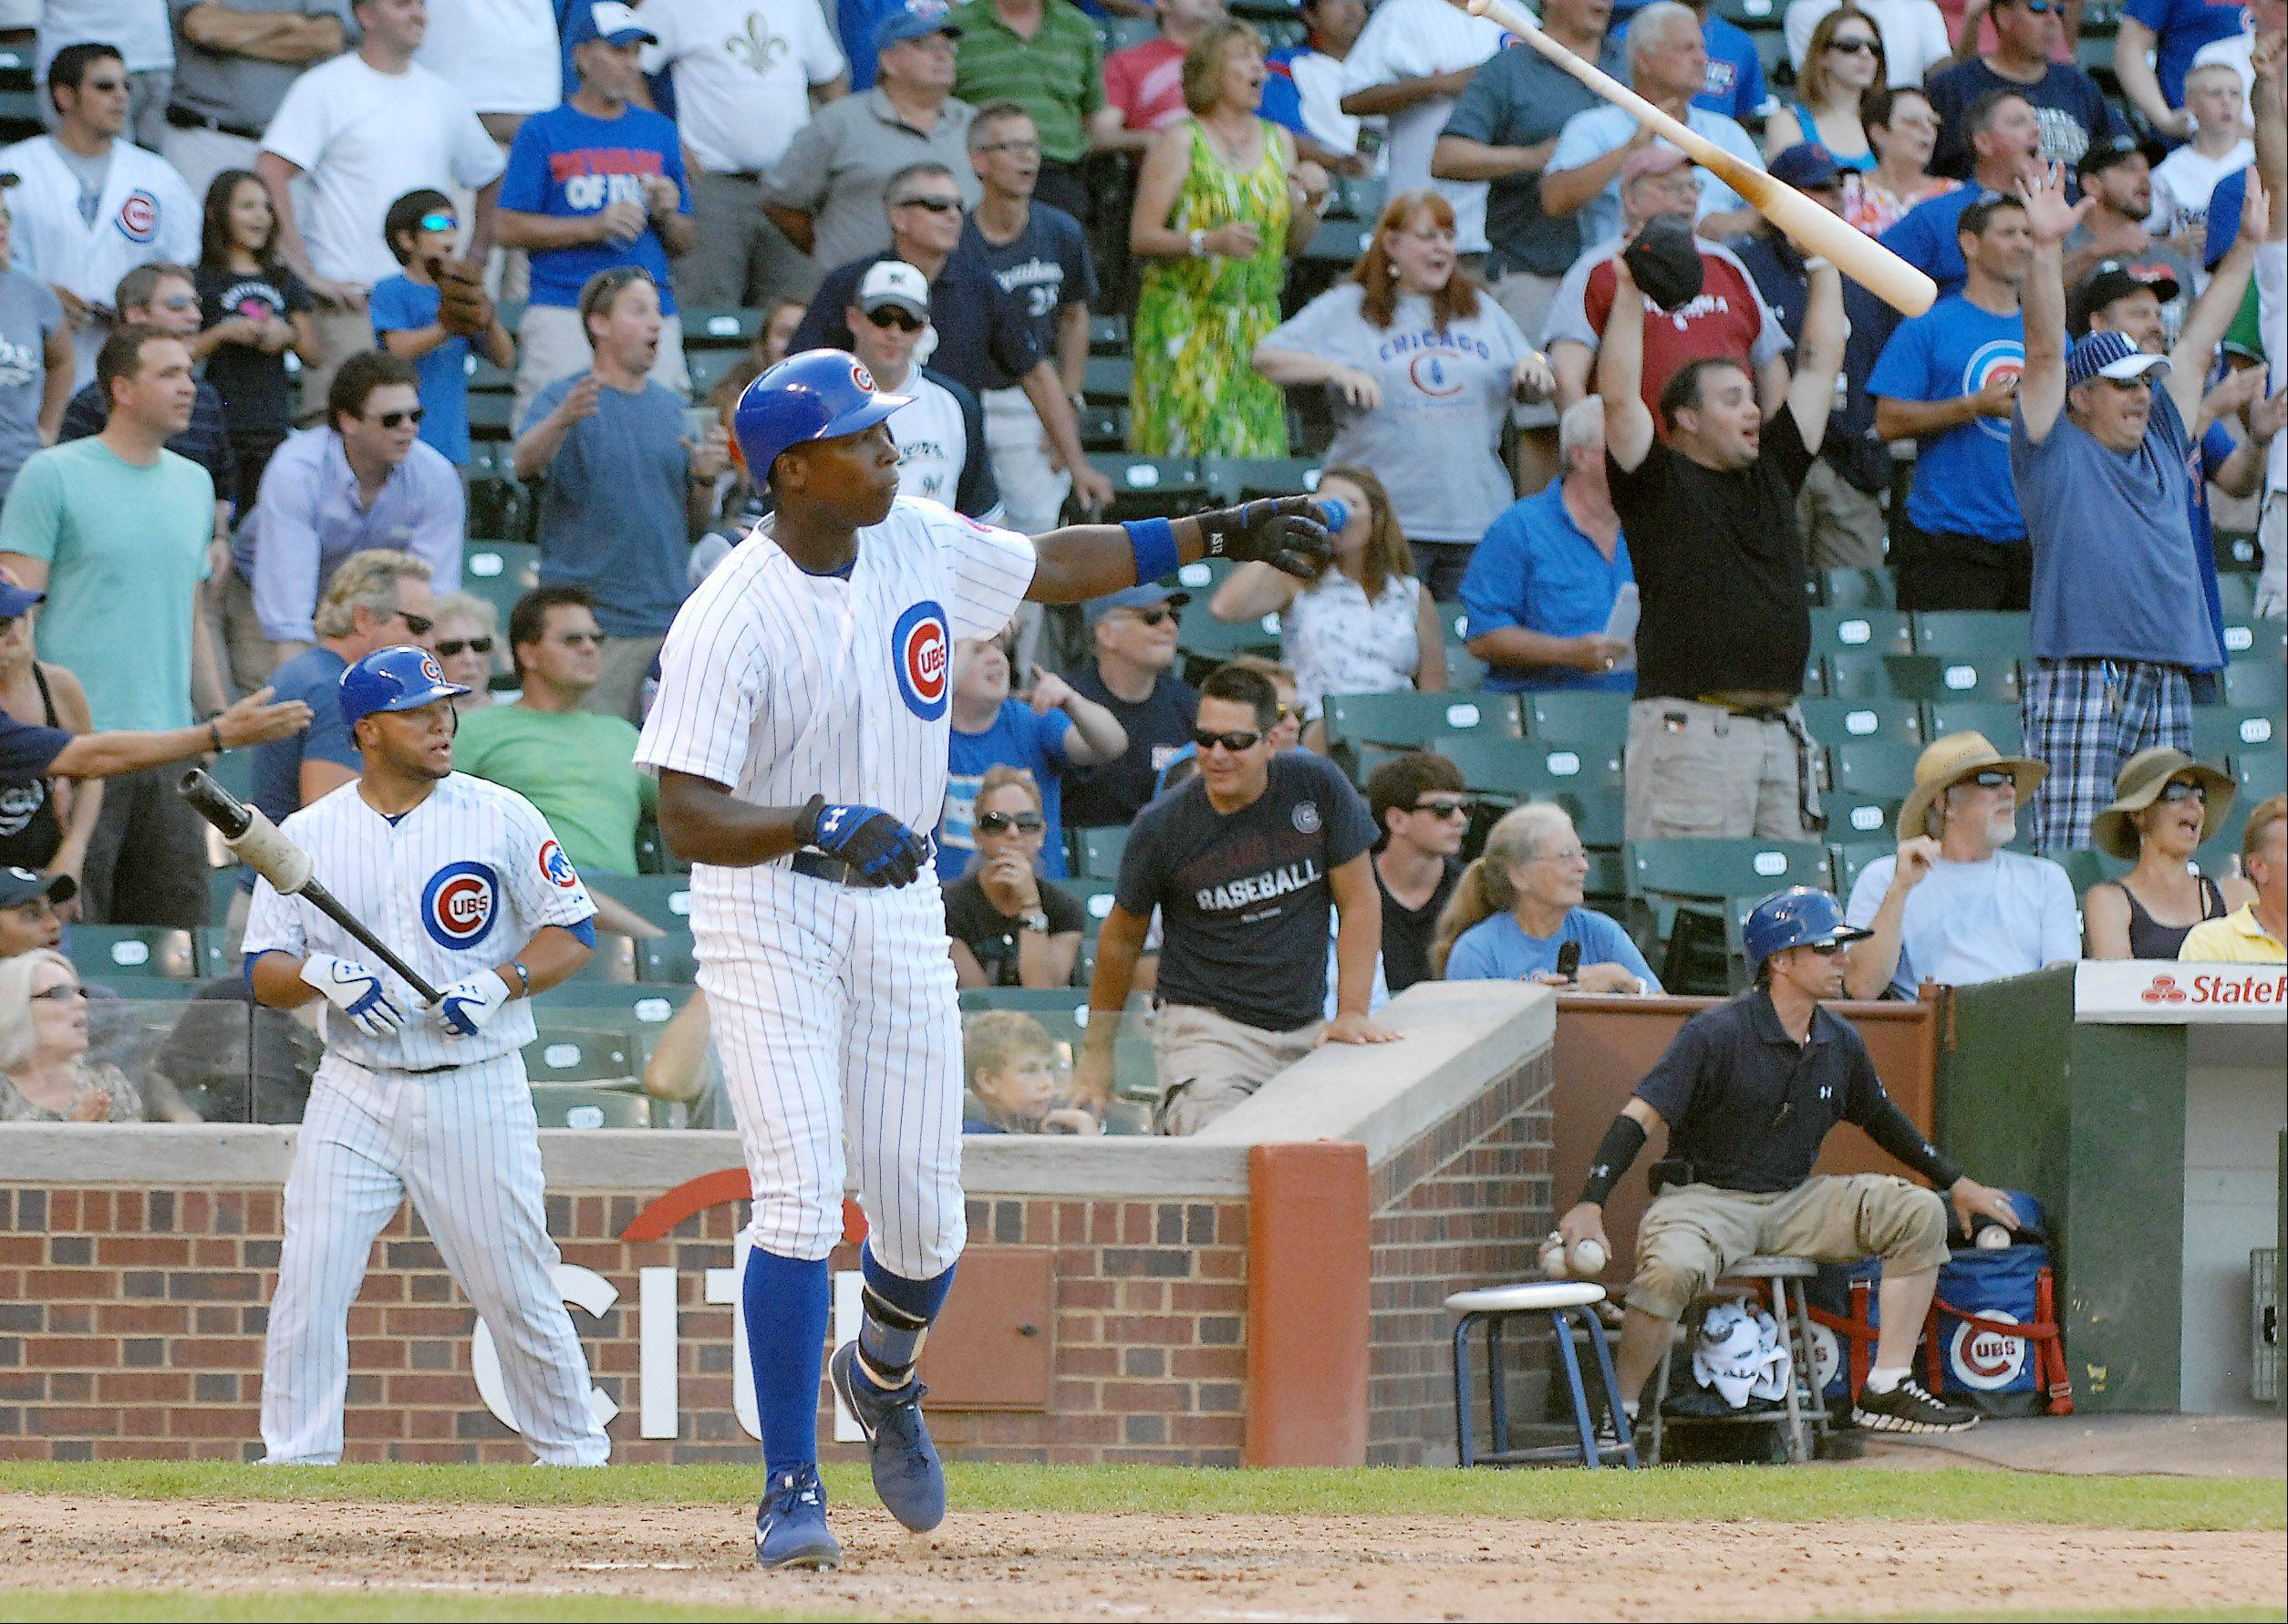 Alfonso Soriano tosses his bat after his game-winning hit.